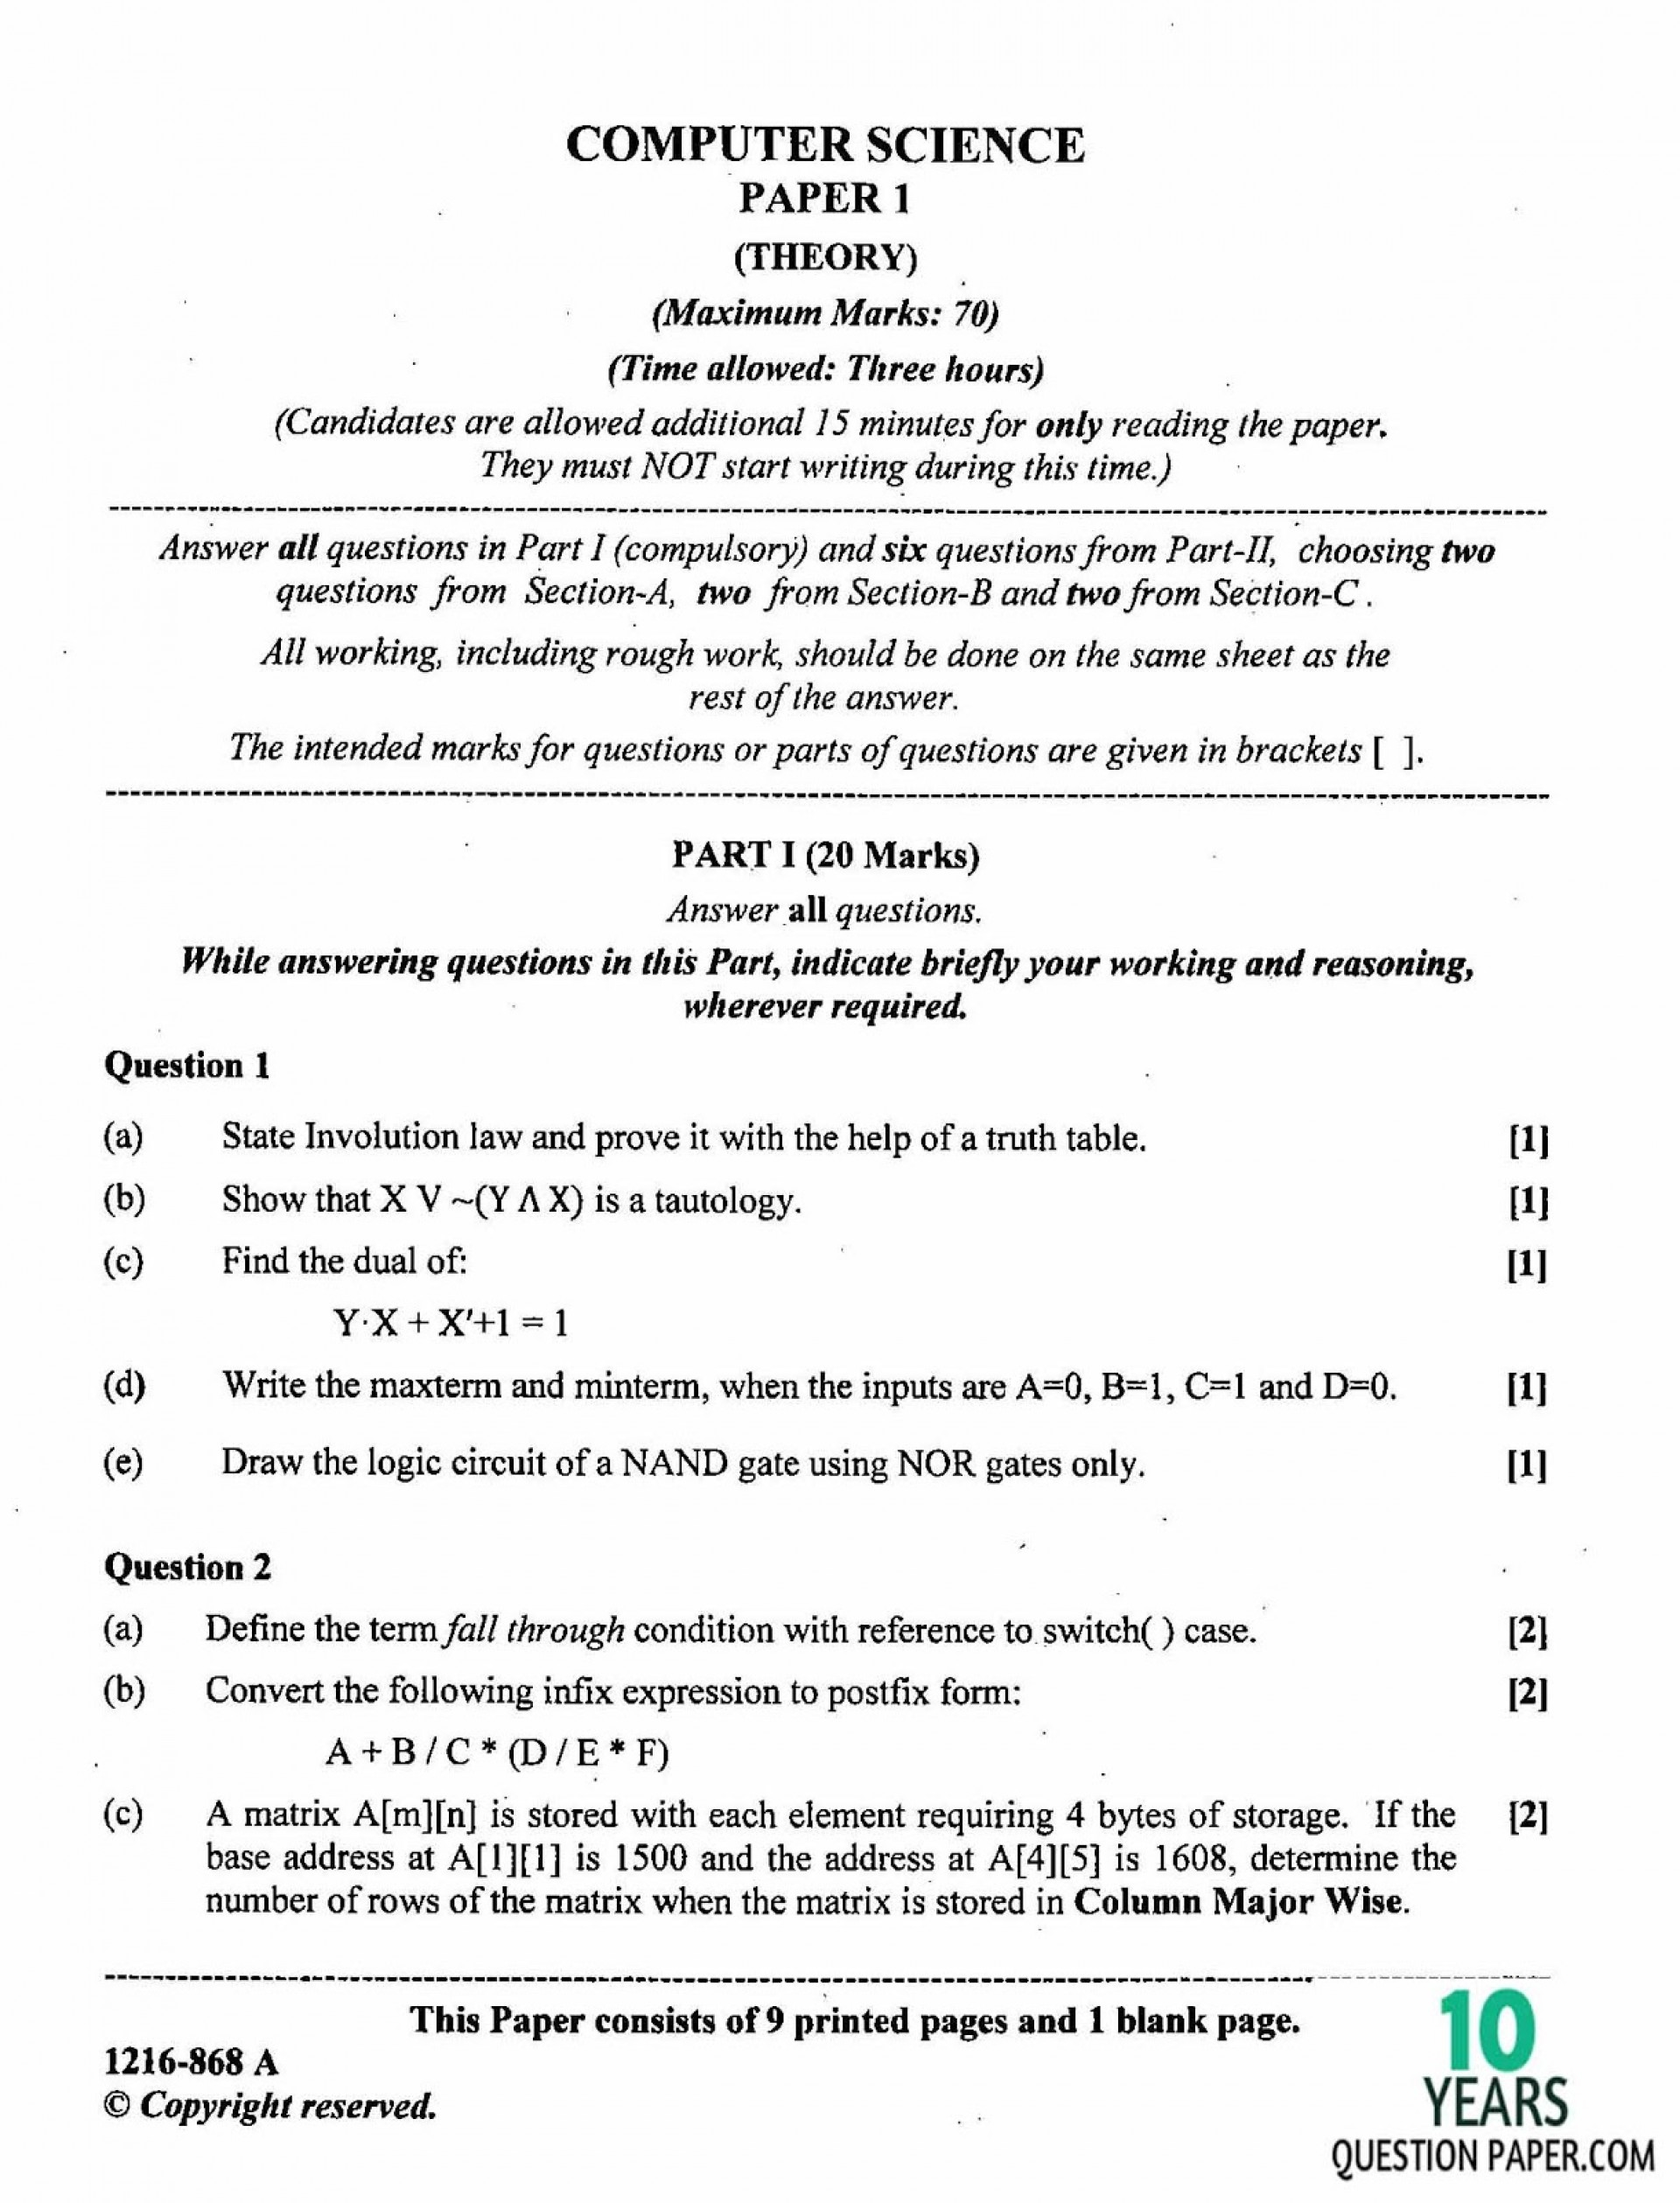 018 Research Paper Computer Science Papers Free Isc Science2b Theory Class Xii Board Question Breathtaking Pdf Download Ieee 1920